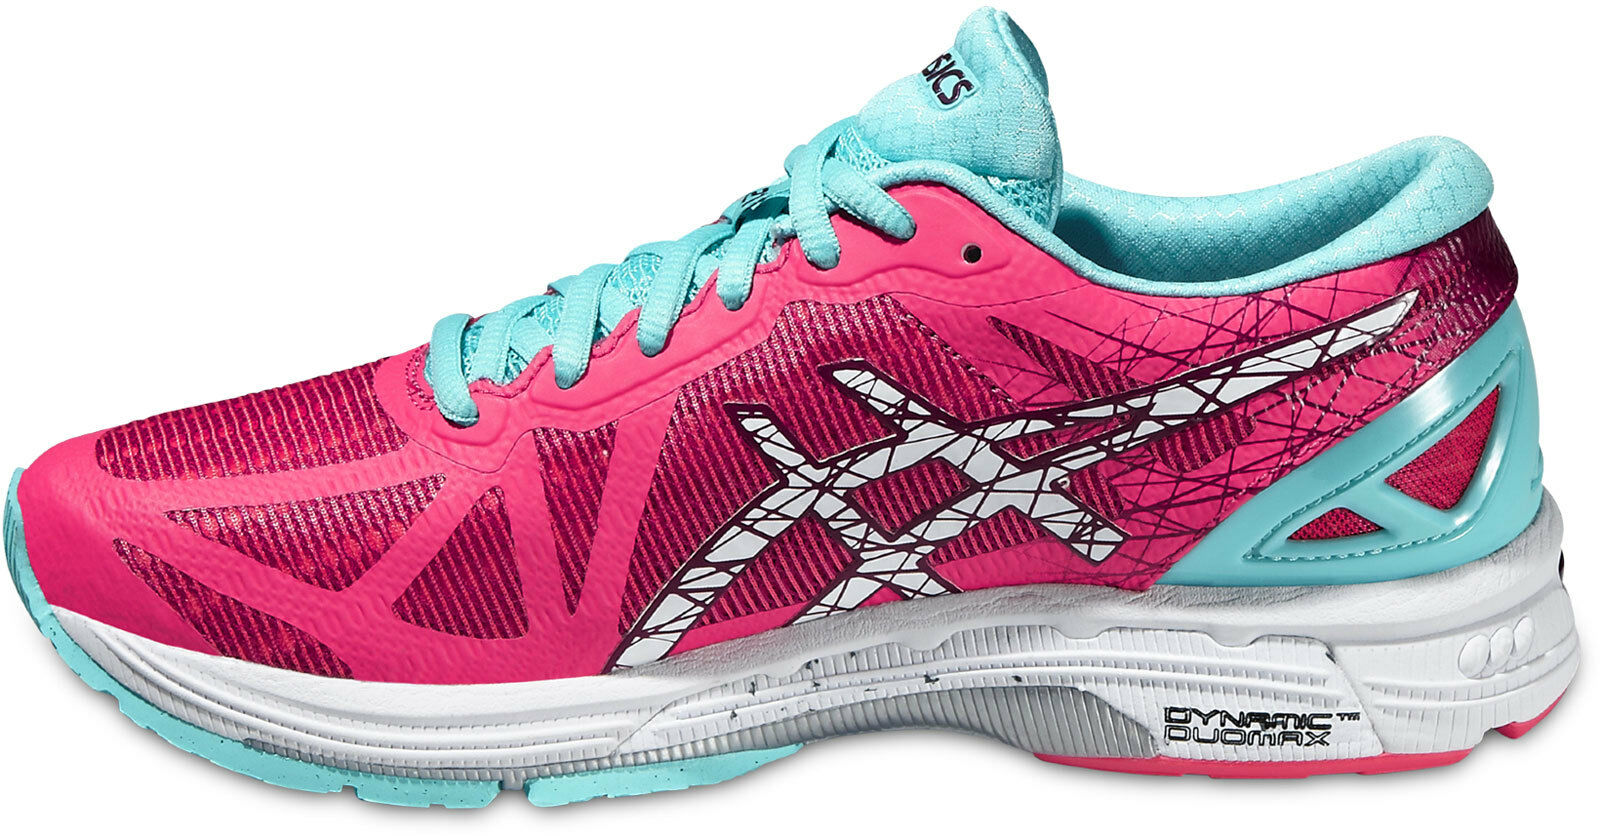 Womens asics Gel DS Trainer 21 Running Jogging Sports shoes Trainers Size